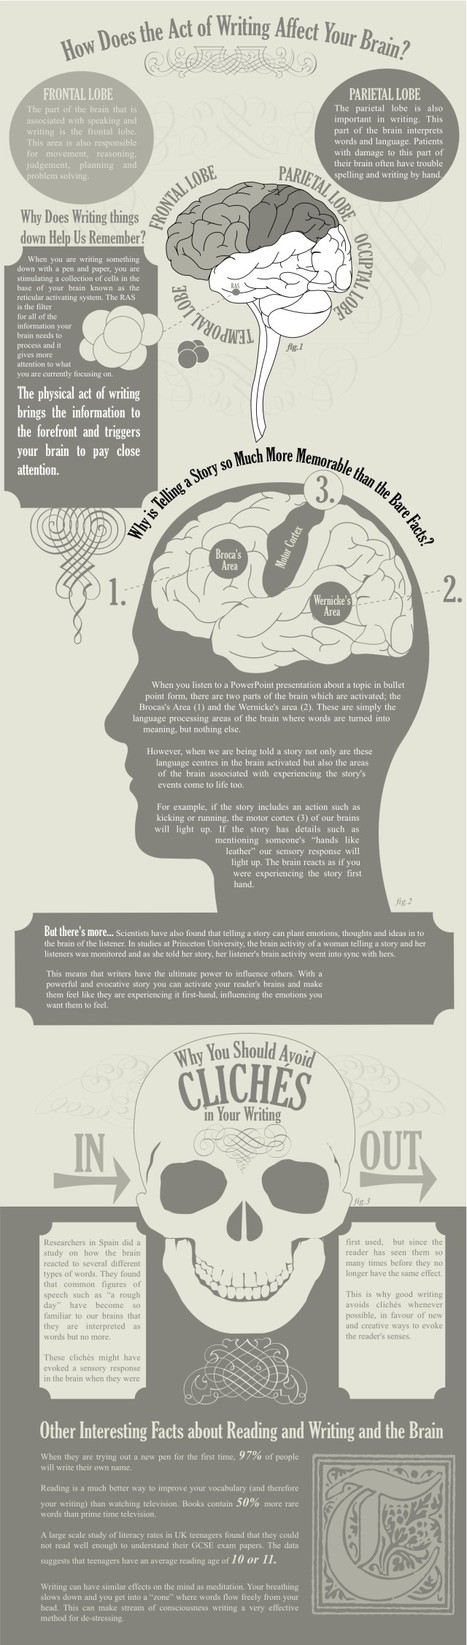 How Does Writing Affect Your Brain? [infographic] | writing | Scoop.it